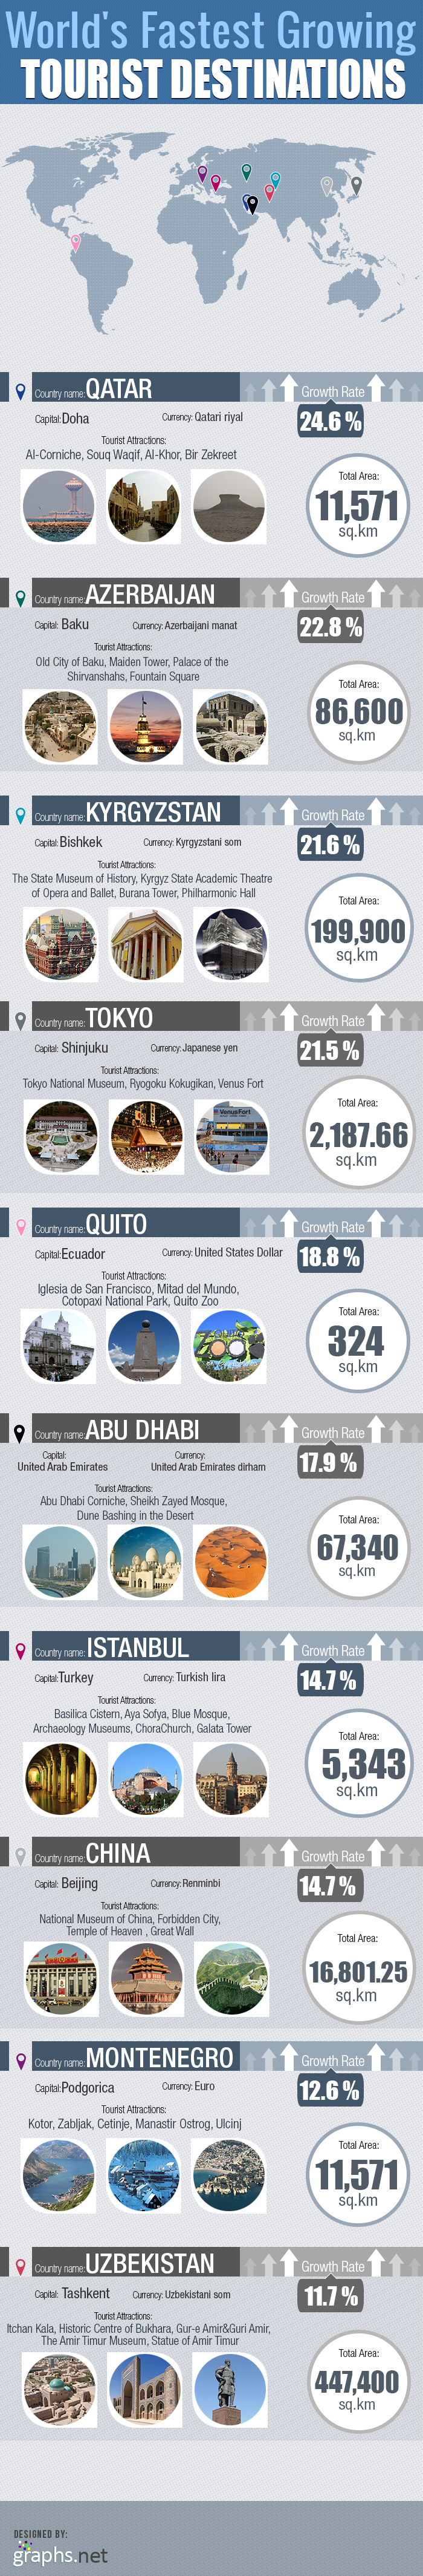 World's Fastest Growing Tourist Destinations